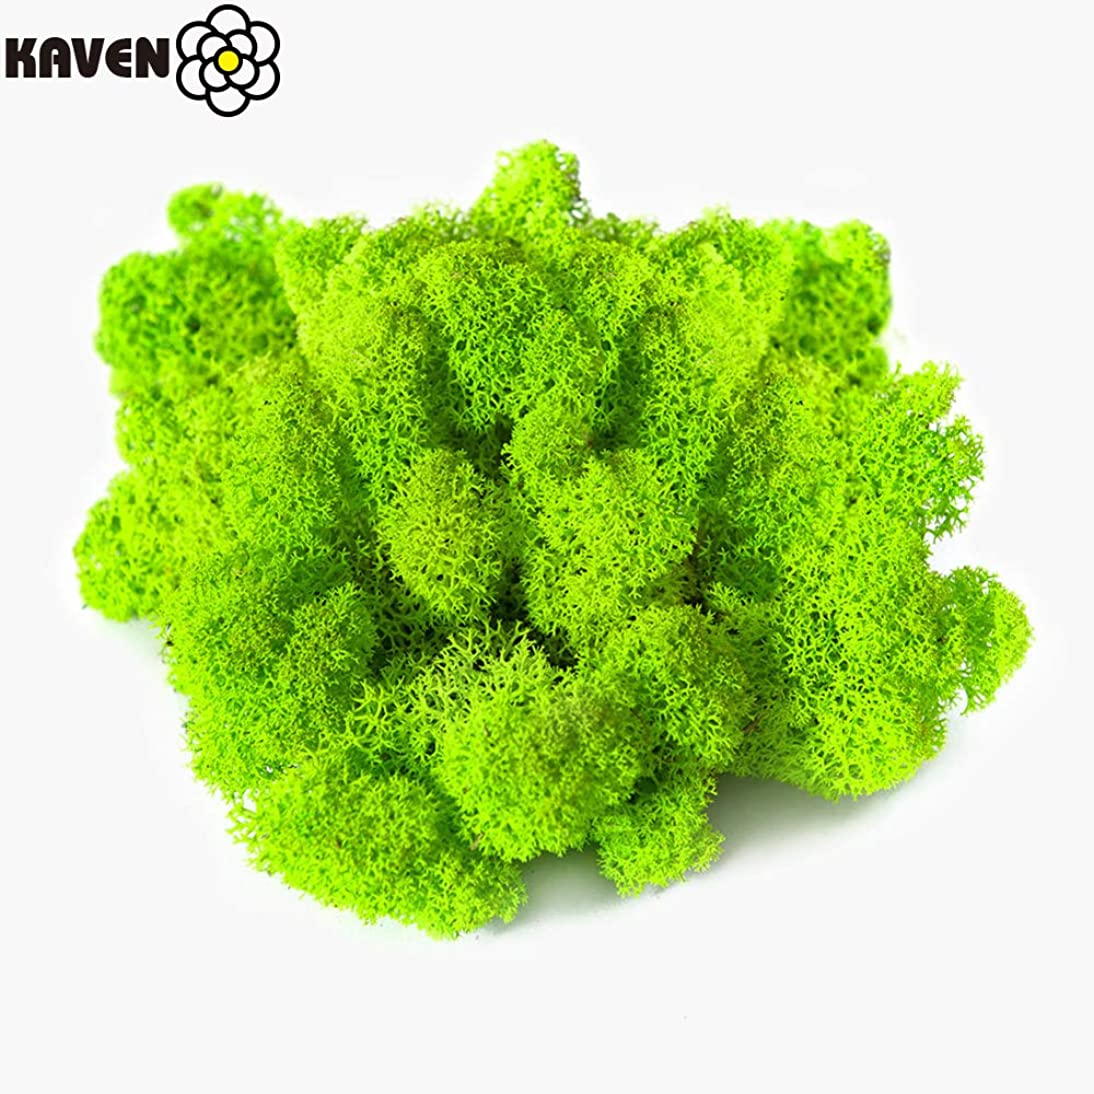 Moss Preserved, Chartreuse Moss for Fairy Gardens, Terrariums, Any Craft or Floral Project or Wedding Other Arts (Chartreuse 8.8oz)